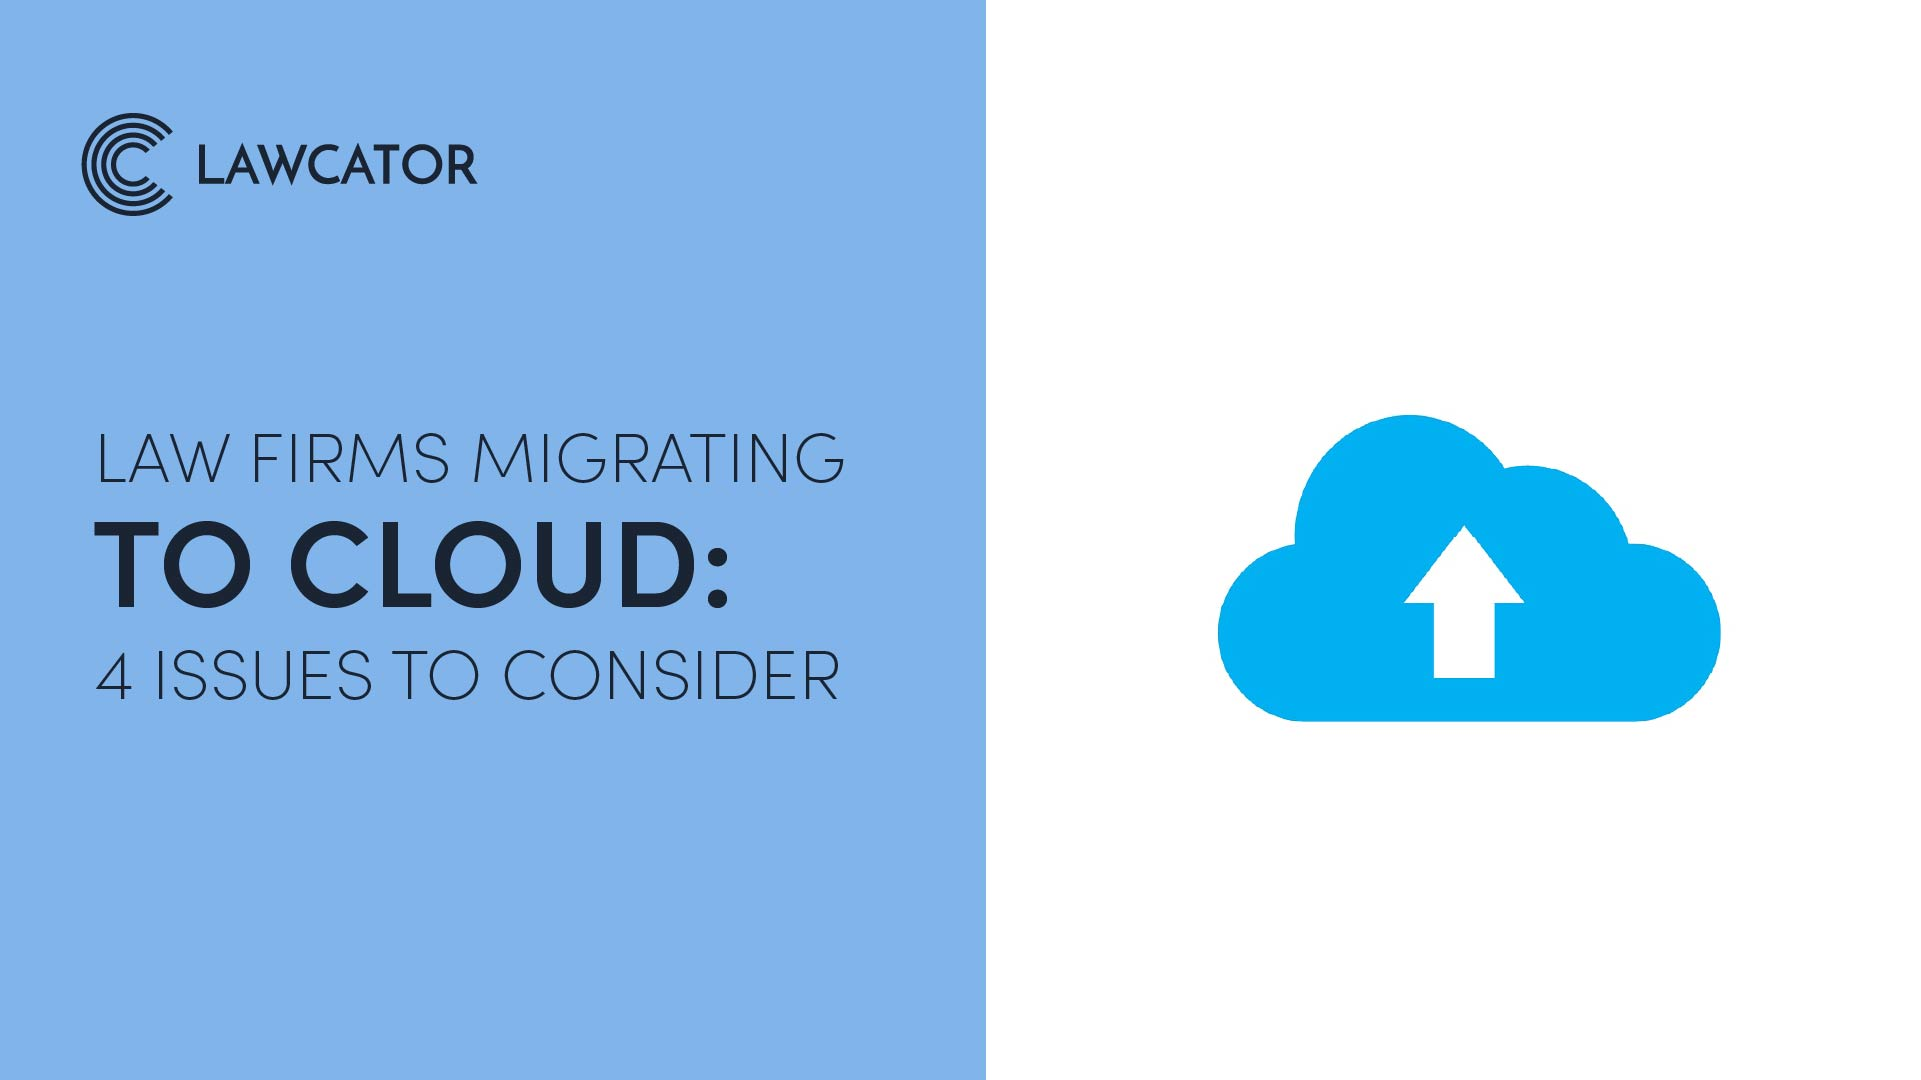 Law Firms Migrating to Cloud: 4 Issues to Consider